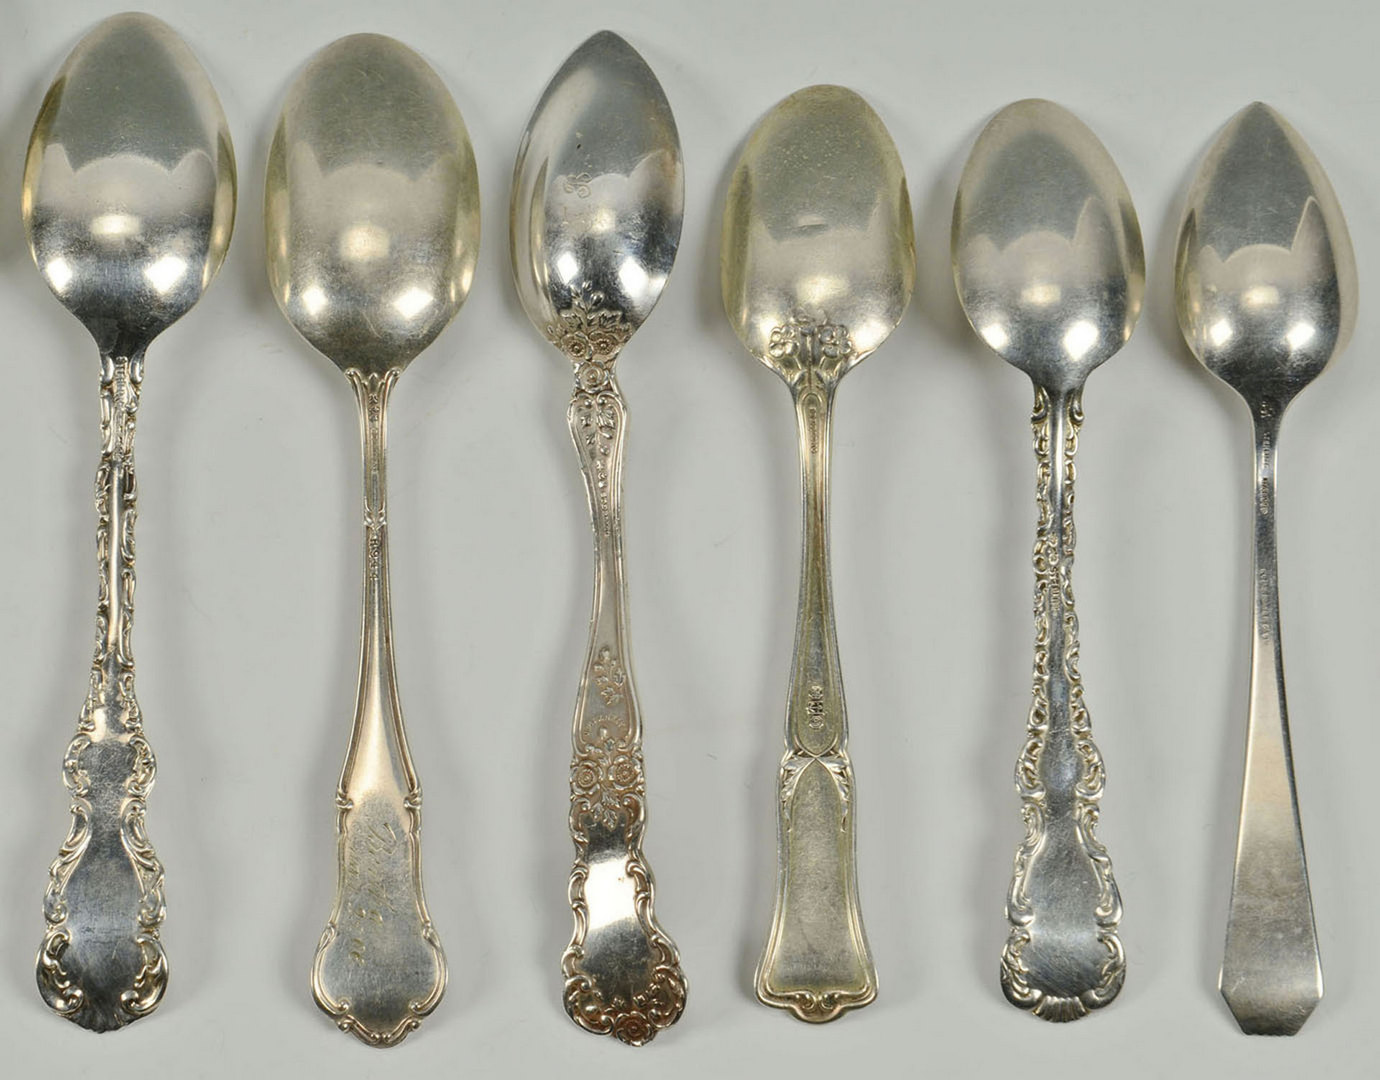 Lot 592: 13 Sterling Silver Spoons incl Tiffany serving spo